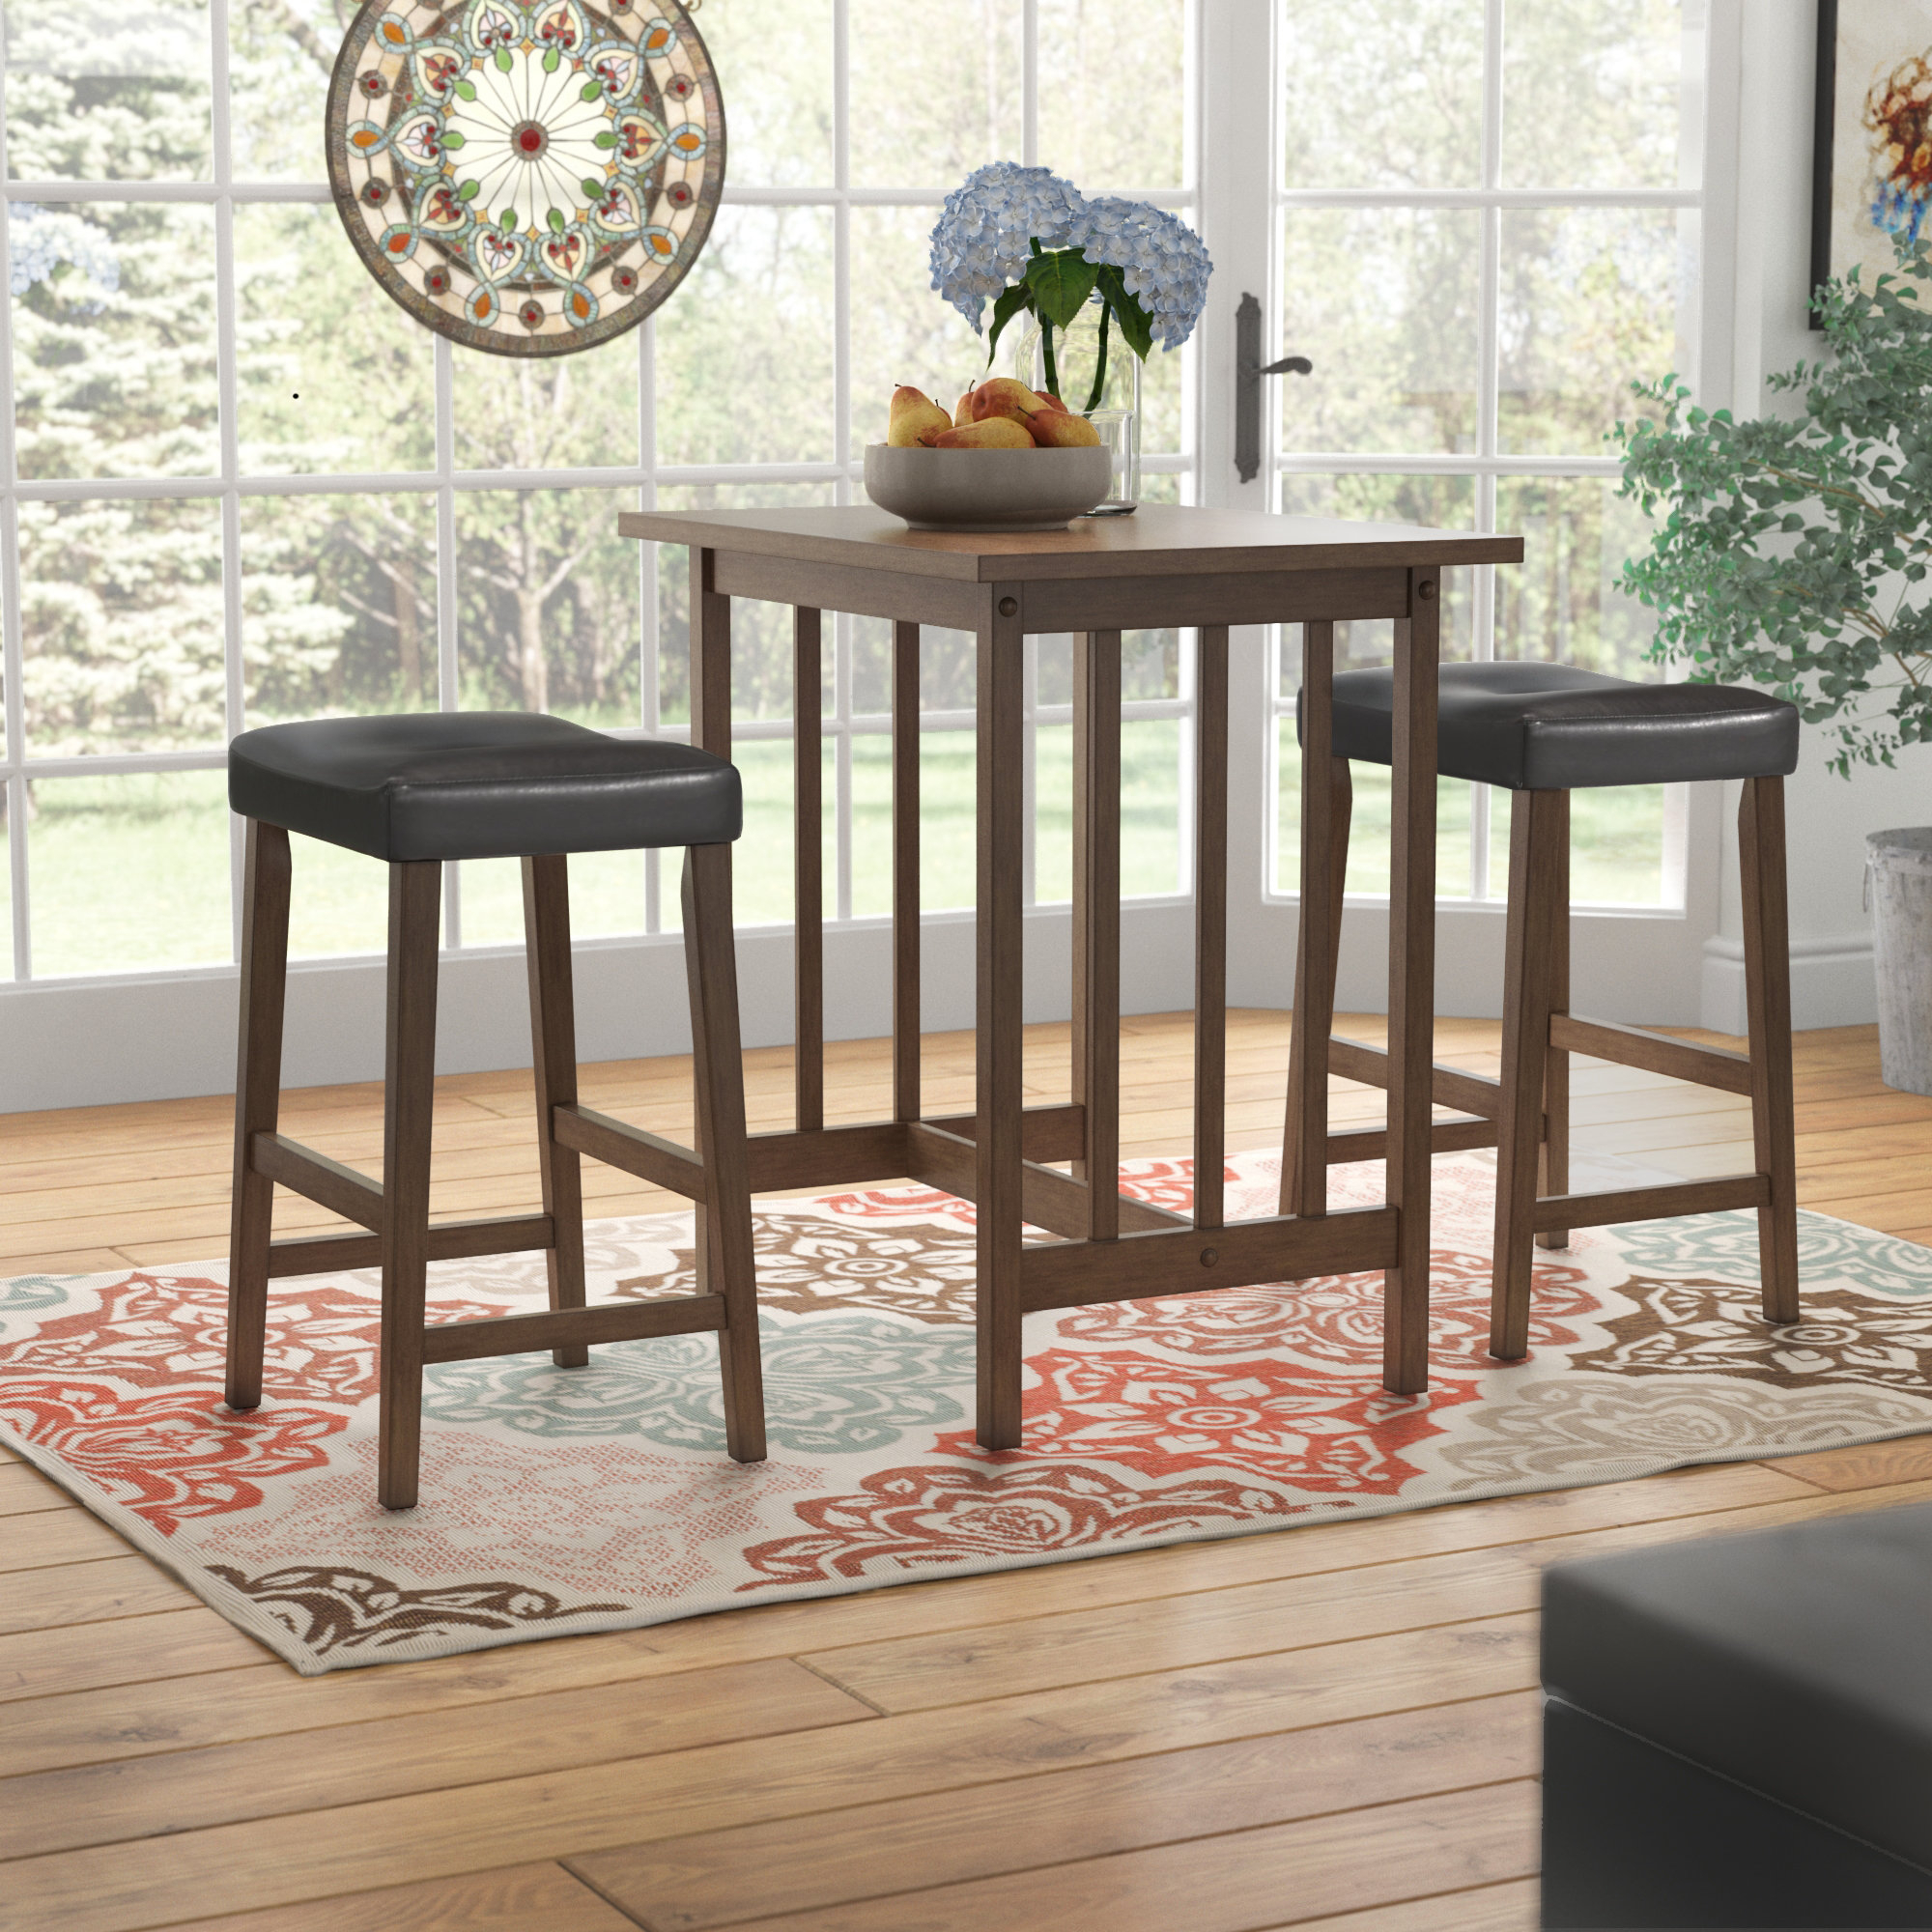 Mitzel 3 Piece Dining Sets Inside Best And Newest Red Barrel Studio Hood Canal 3 Piece Dining Set & Reviews (View 5 of 20)